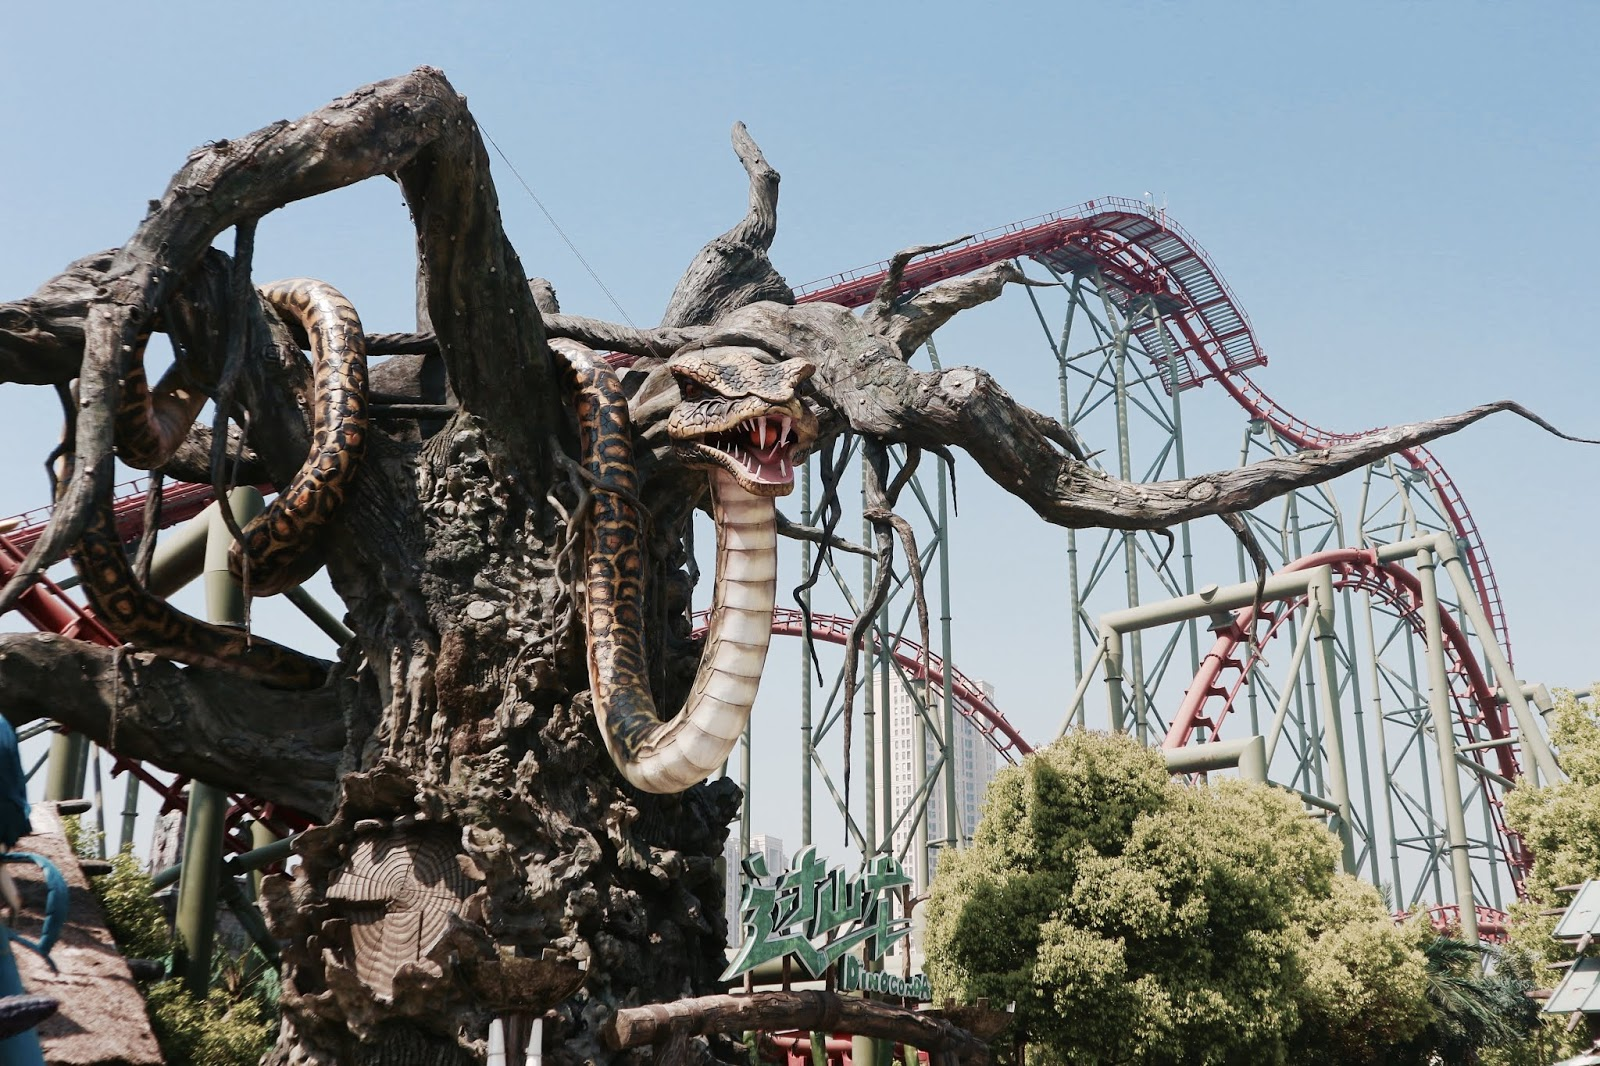 Image Of Dinoconda Roller Coaster Entrance China Dinosaurs Park